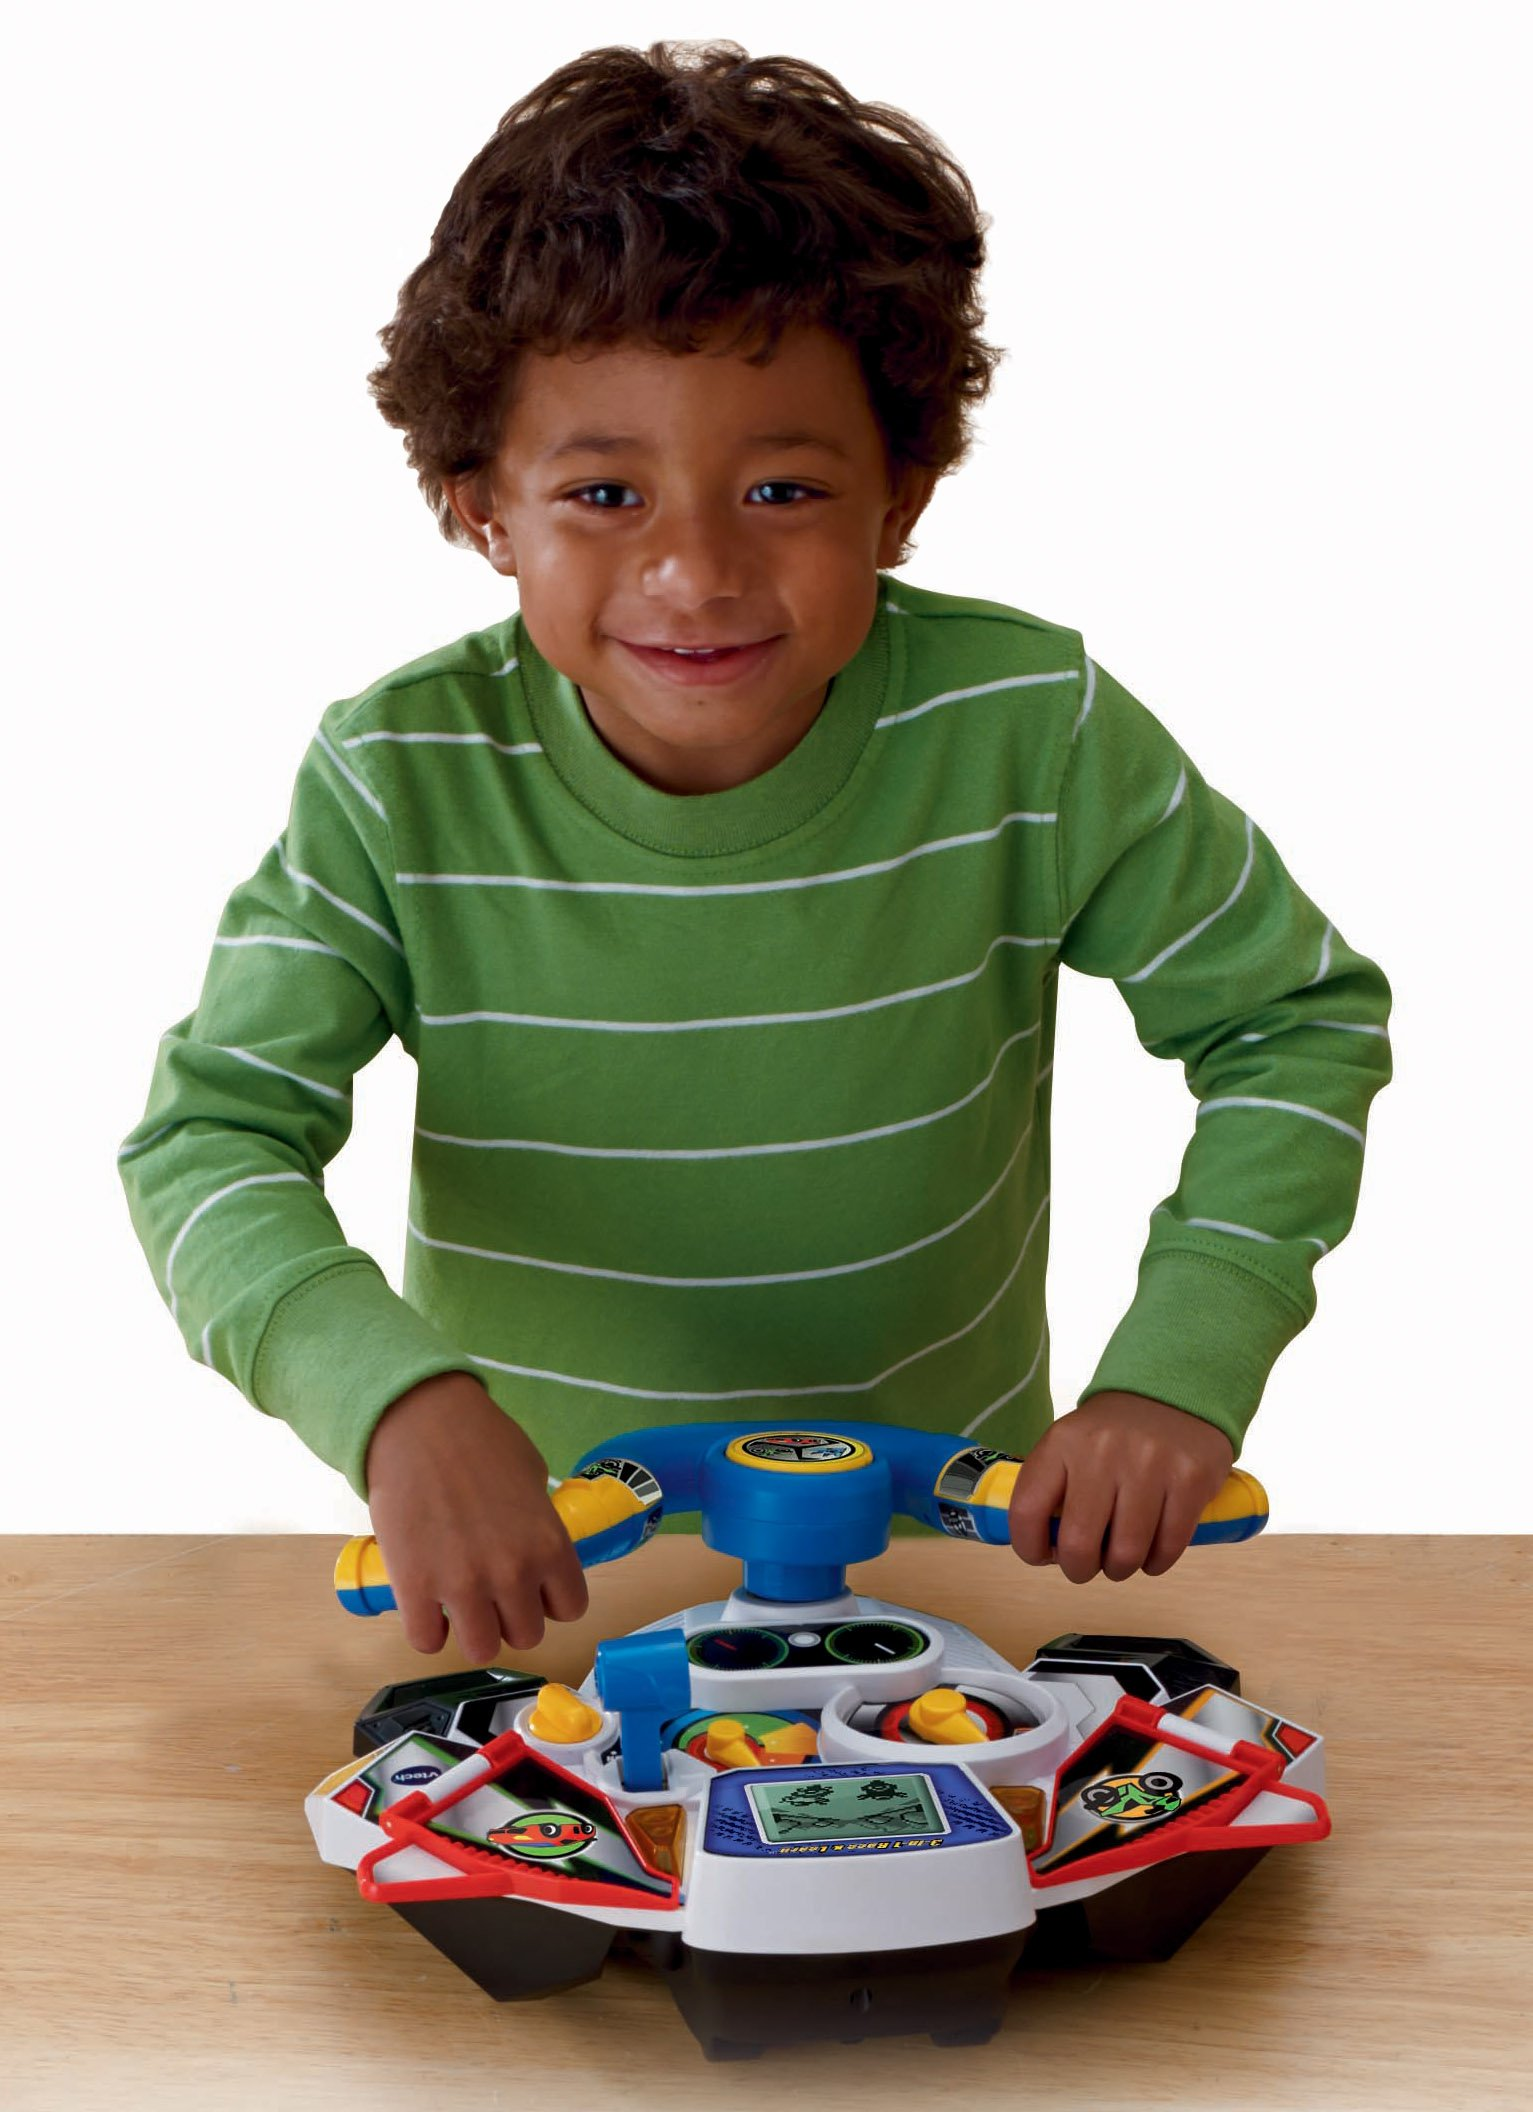 VTech 3-in-1 Race and Learn by VTech